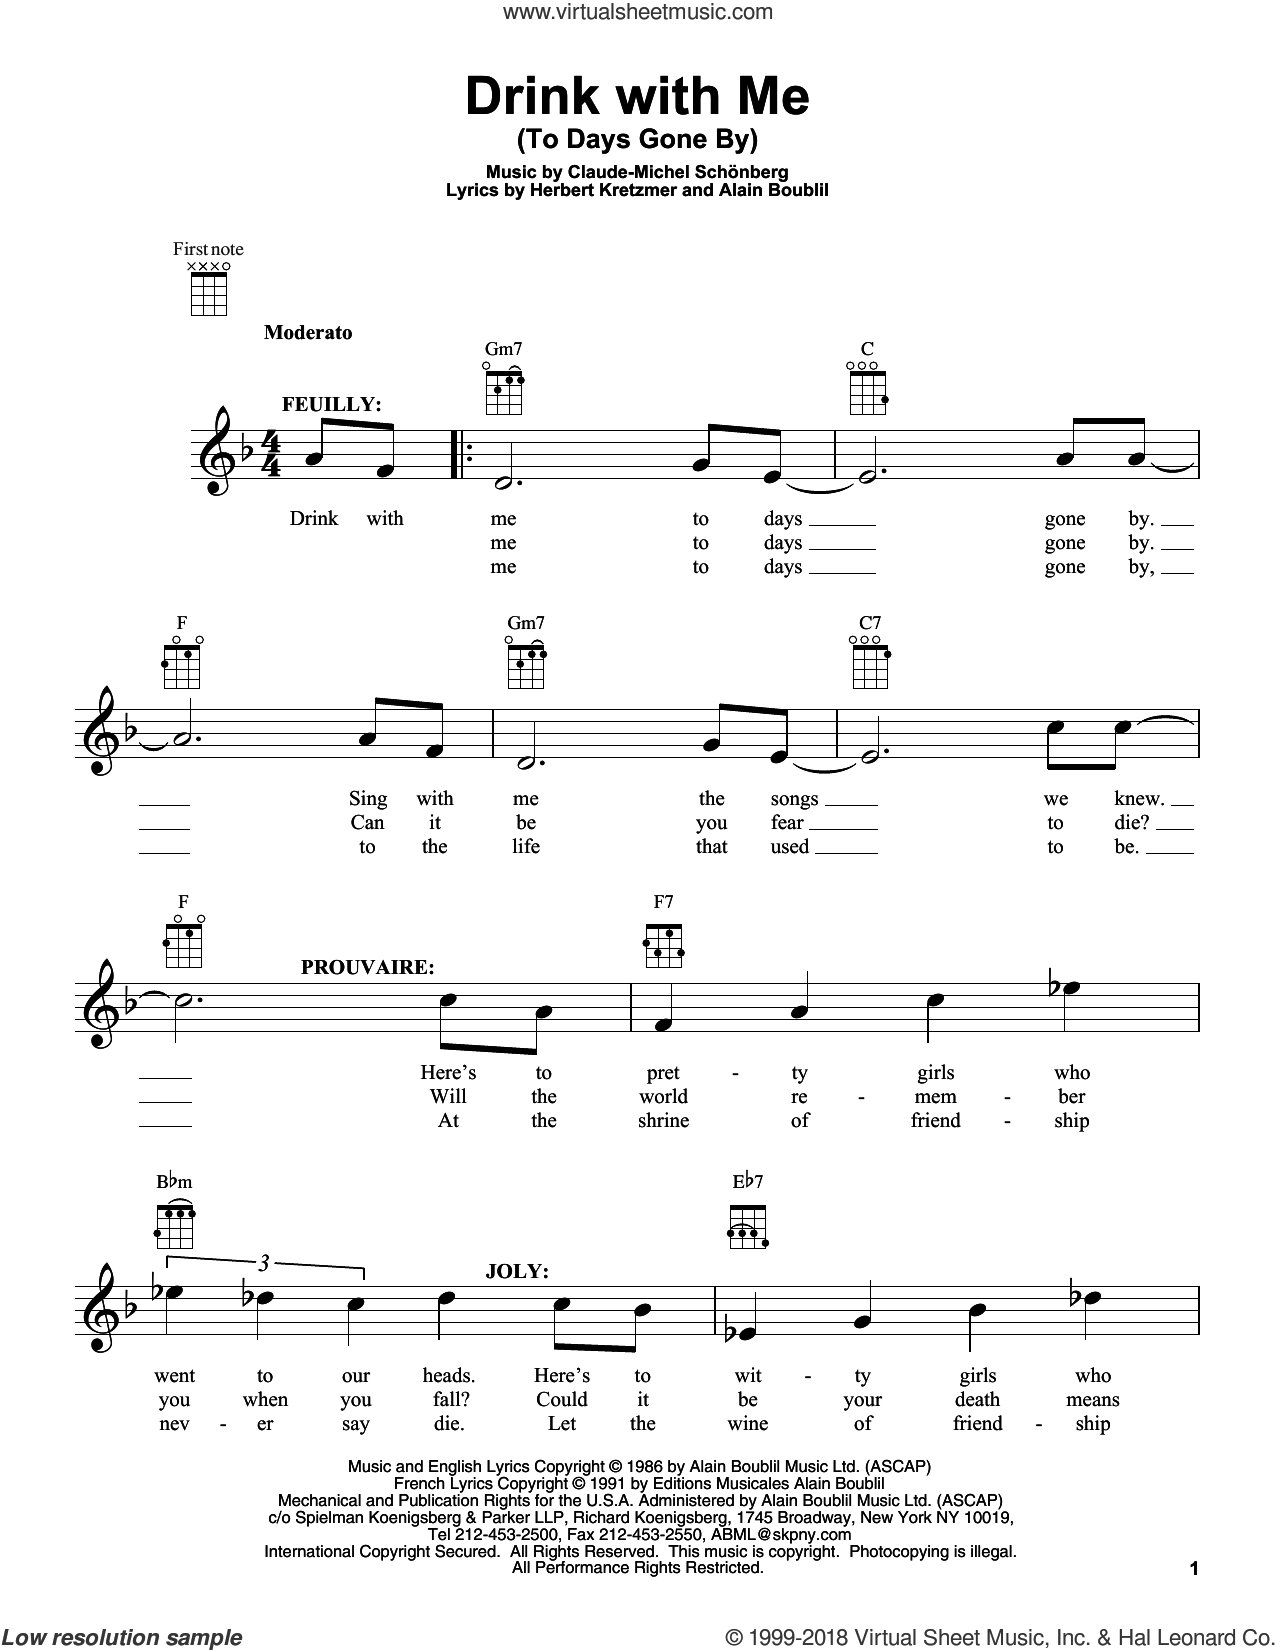 Drink With Me (To Days Gone By) sheet music for ukulele by Claude-Michel Schonberg, Alain Boublil and Les Miserables (Movie), intermediate skill level